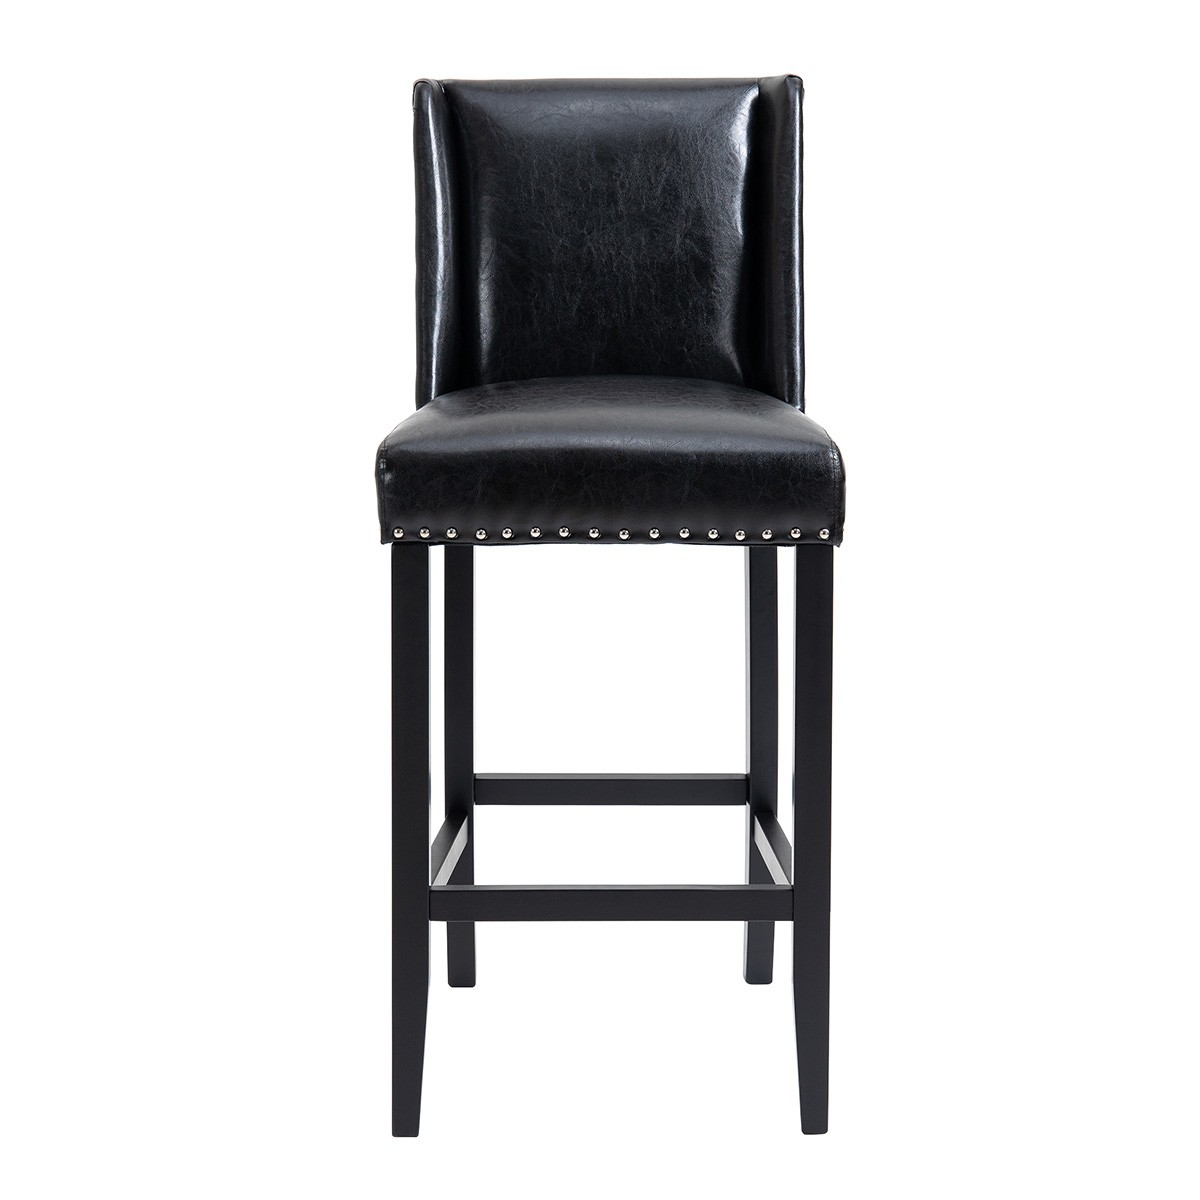 Gowrie Faux Leather Bar Stool, Black